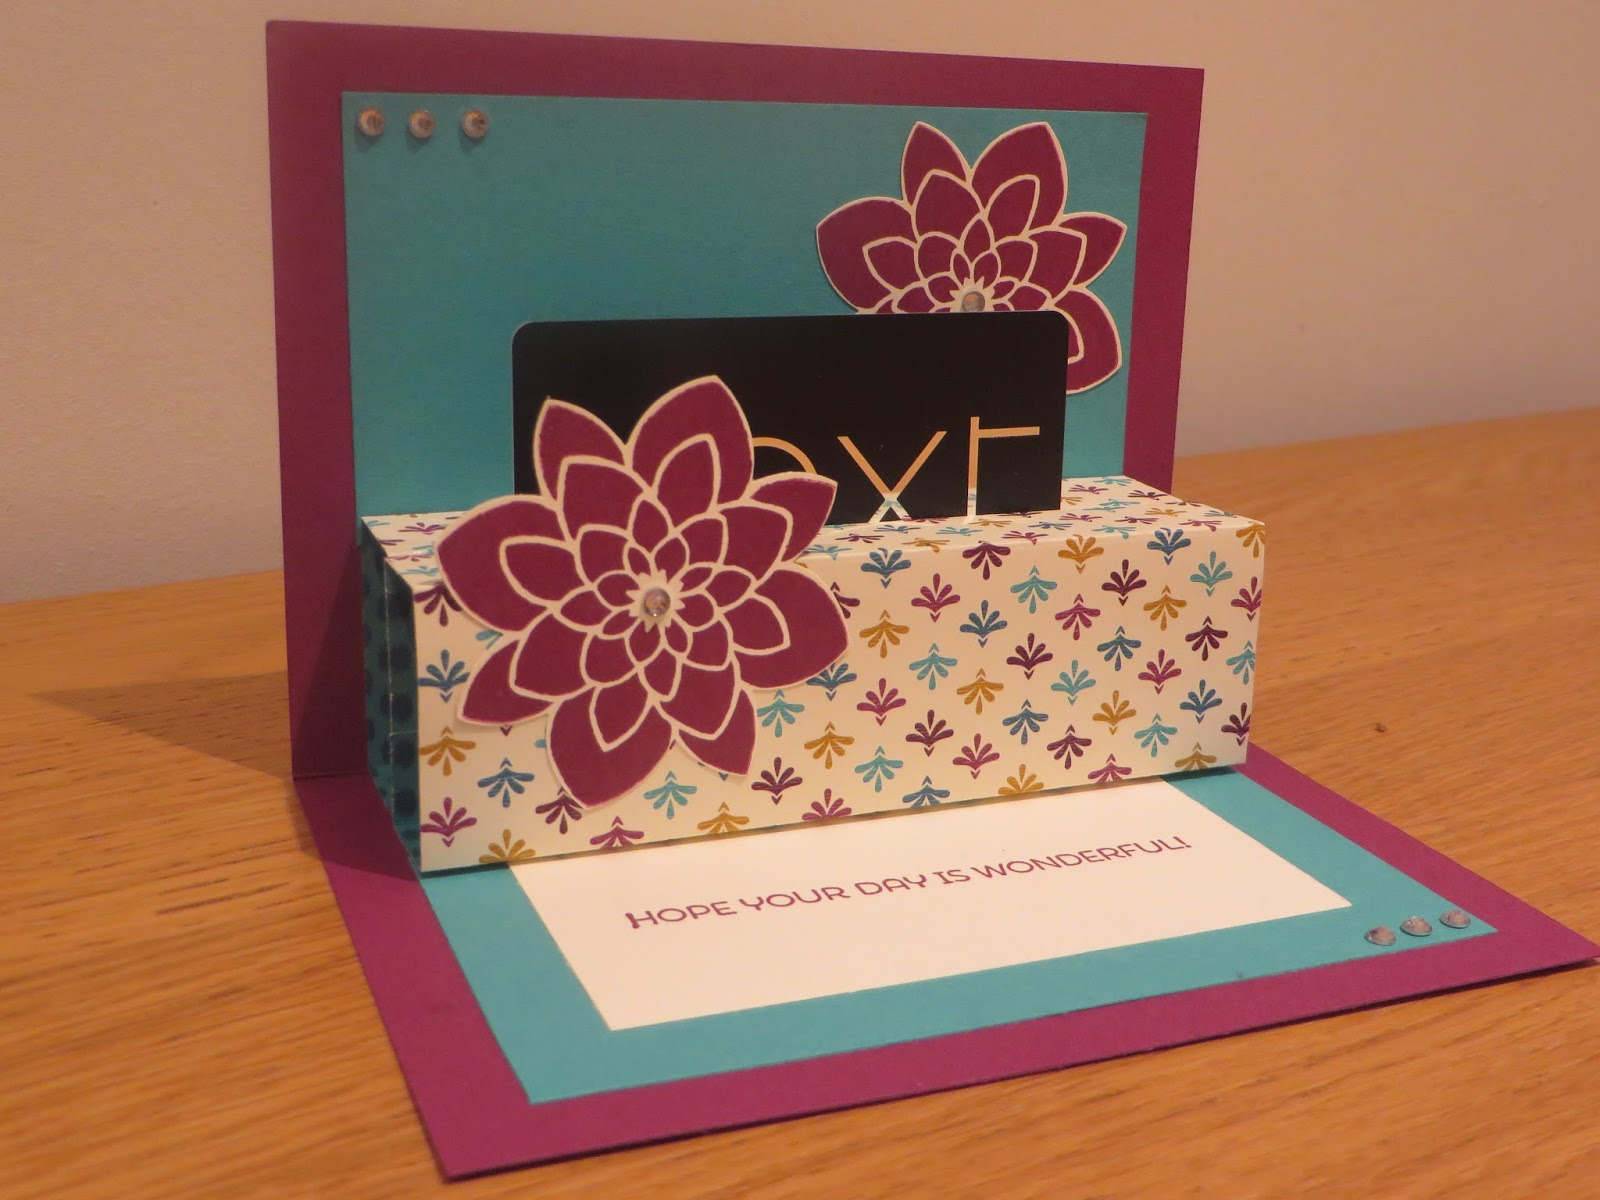 Craftycarolinecreates Popup Gift Card Holder Tutorial. University At Buffalo Graduate School. Nail Salon Price List. Restaurant Gift Certificate Template. Free Ecommerce Website Template. Free Shipping Label Template. Good Invoice Template Pdf Download. Hough Graduate School Of Business. Recipe Book Cover